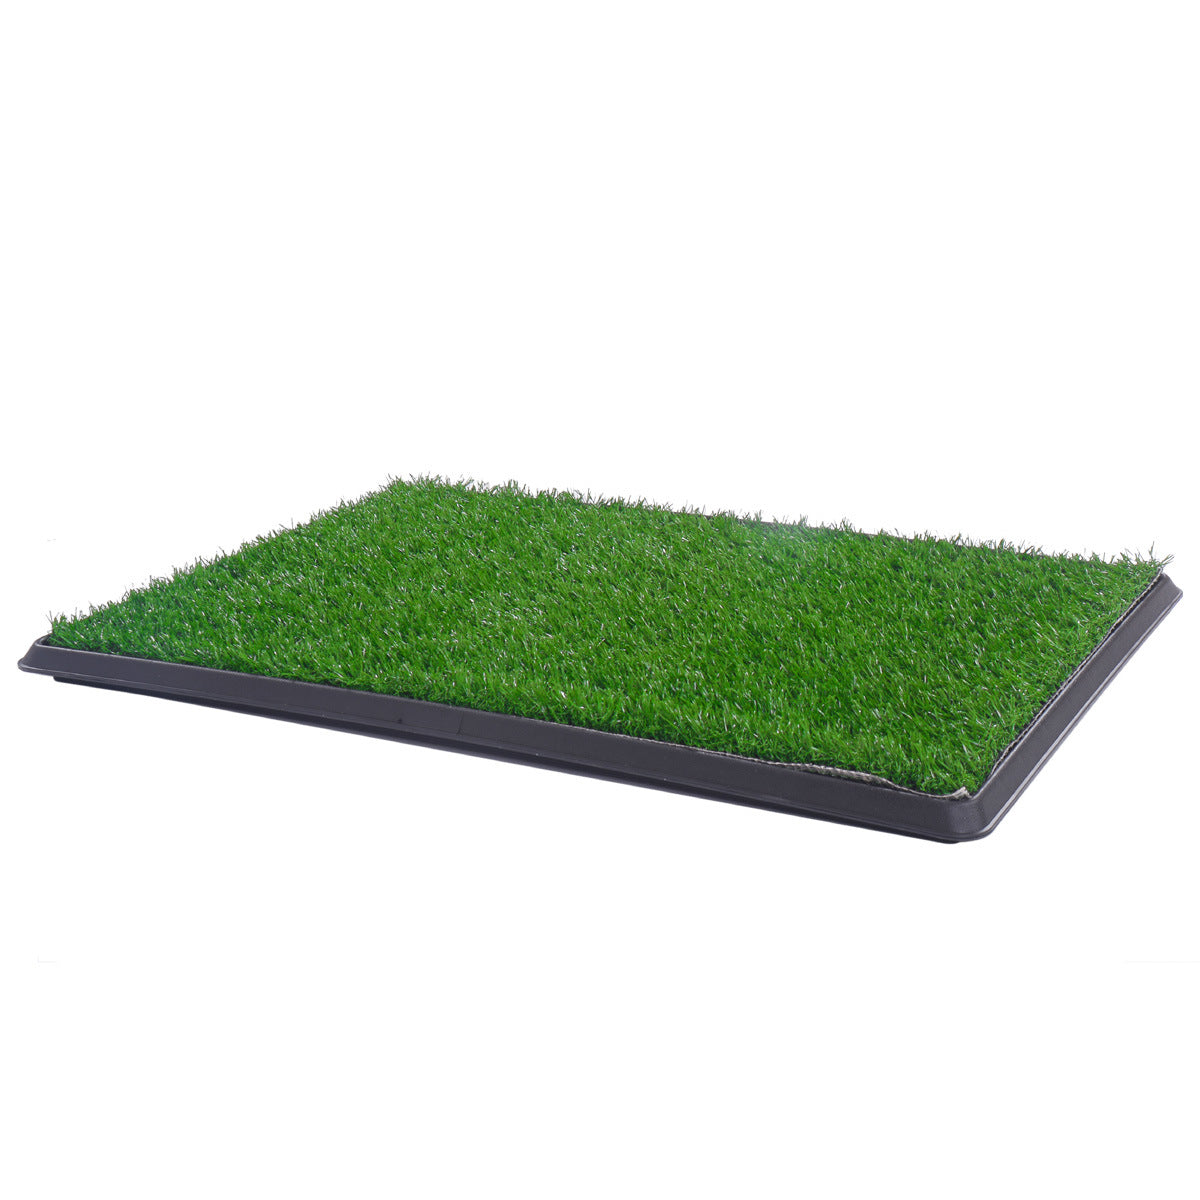 Pet Toilet, Puppy Dog Pet Potty Training Pee, Artificial Grass Pad with Tray (30''X20''), Replacement Dogs Turf Potty Training for Indoor Apartment